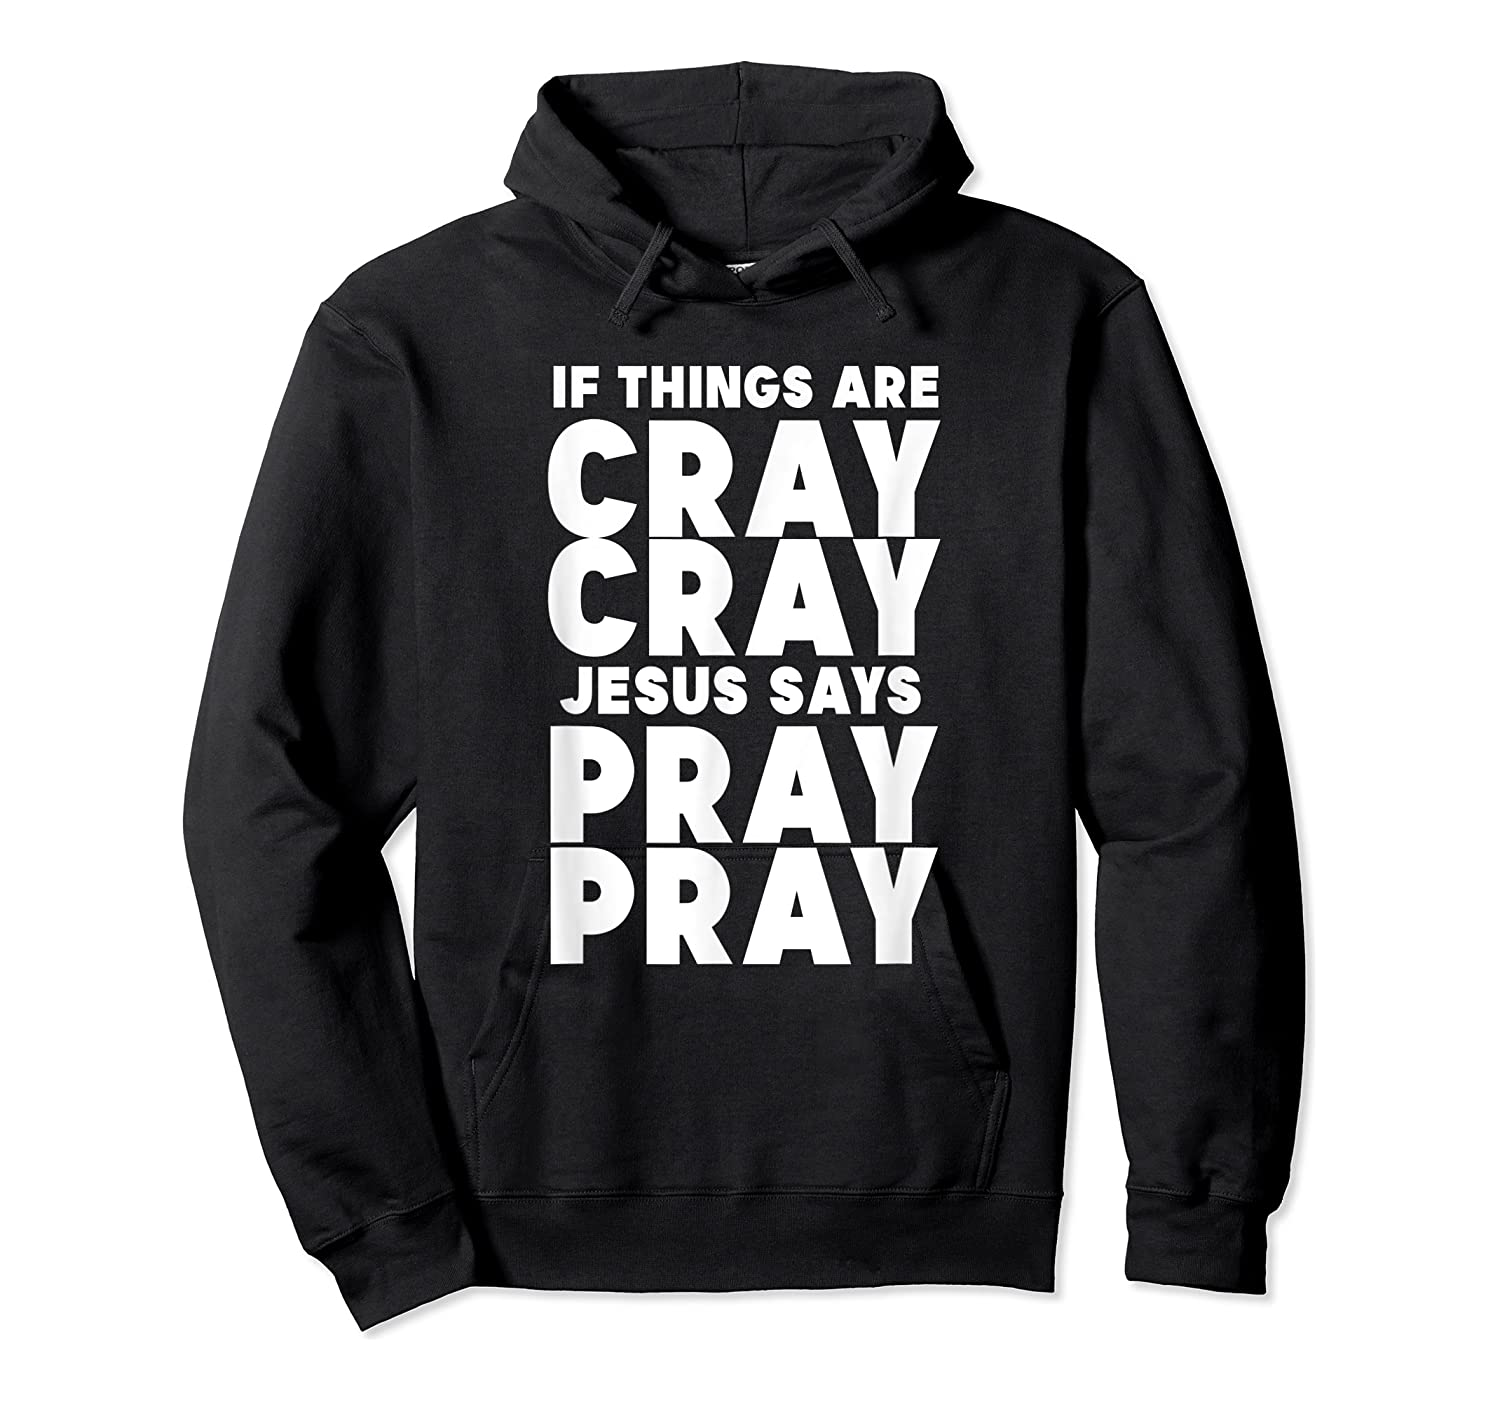 Funny If Things Are Cray Cray Jesus Says Pray Pray Shirts Unisex Pullover Hoodie